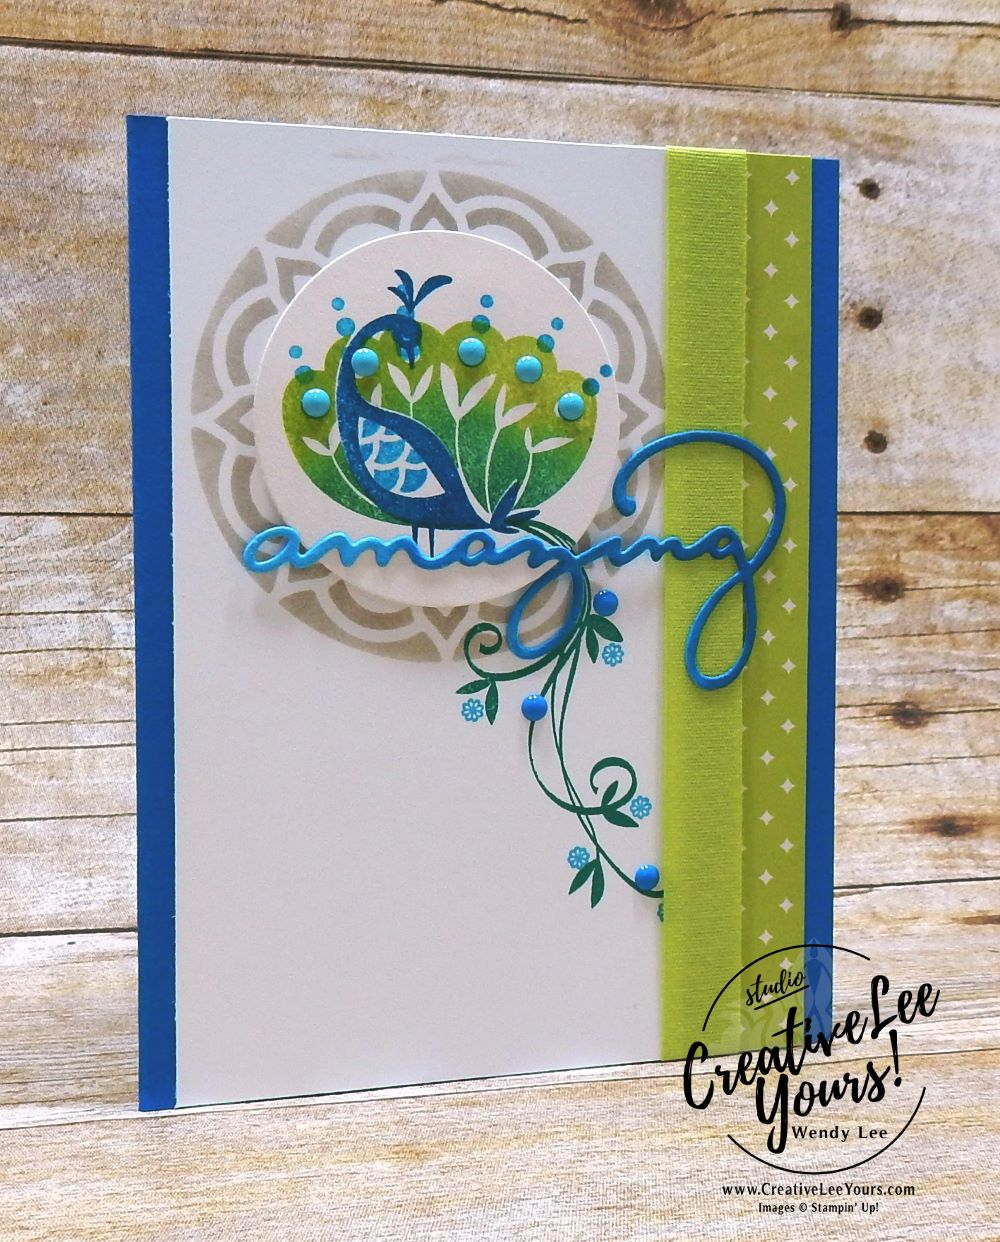 Amazing Friend by Wendy lee, Stampin Up, stamping, hand made, friend, teacher appreciation, secretaries day, birthday,#creativeleeyours, creatively yours, january 2018 FMN class, forget me not, SAB, Sale-a-bration,Beautiful peacock stamp set, eastern beauty stamp set, FREE stamps,celebrate you thinlits